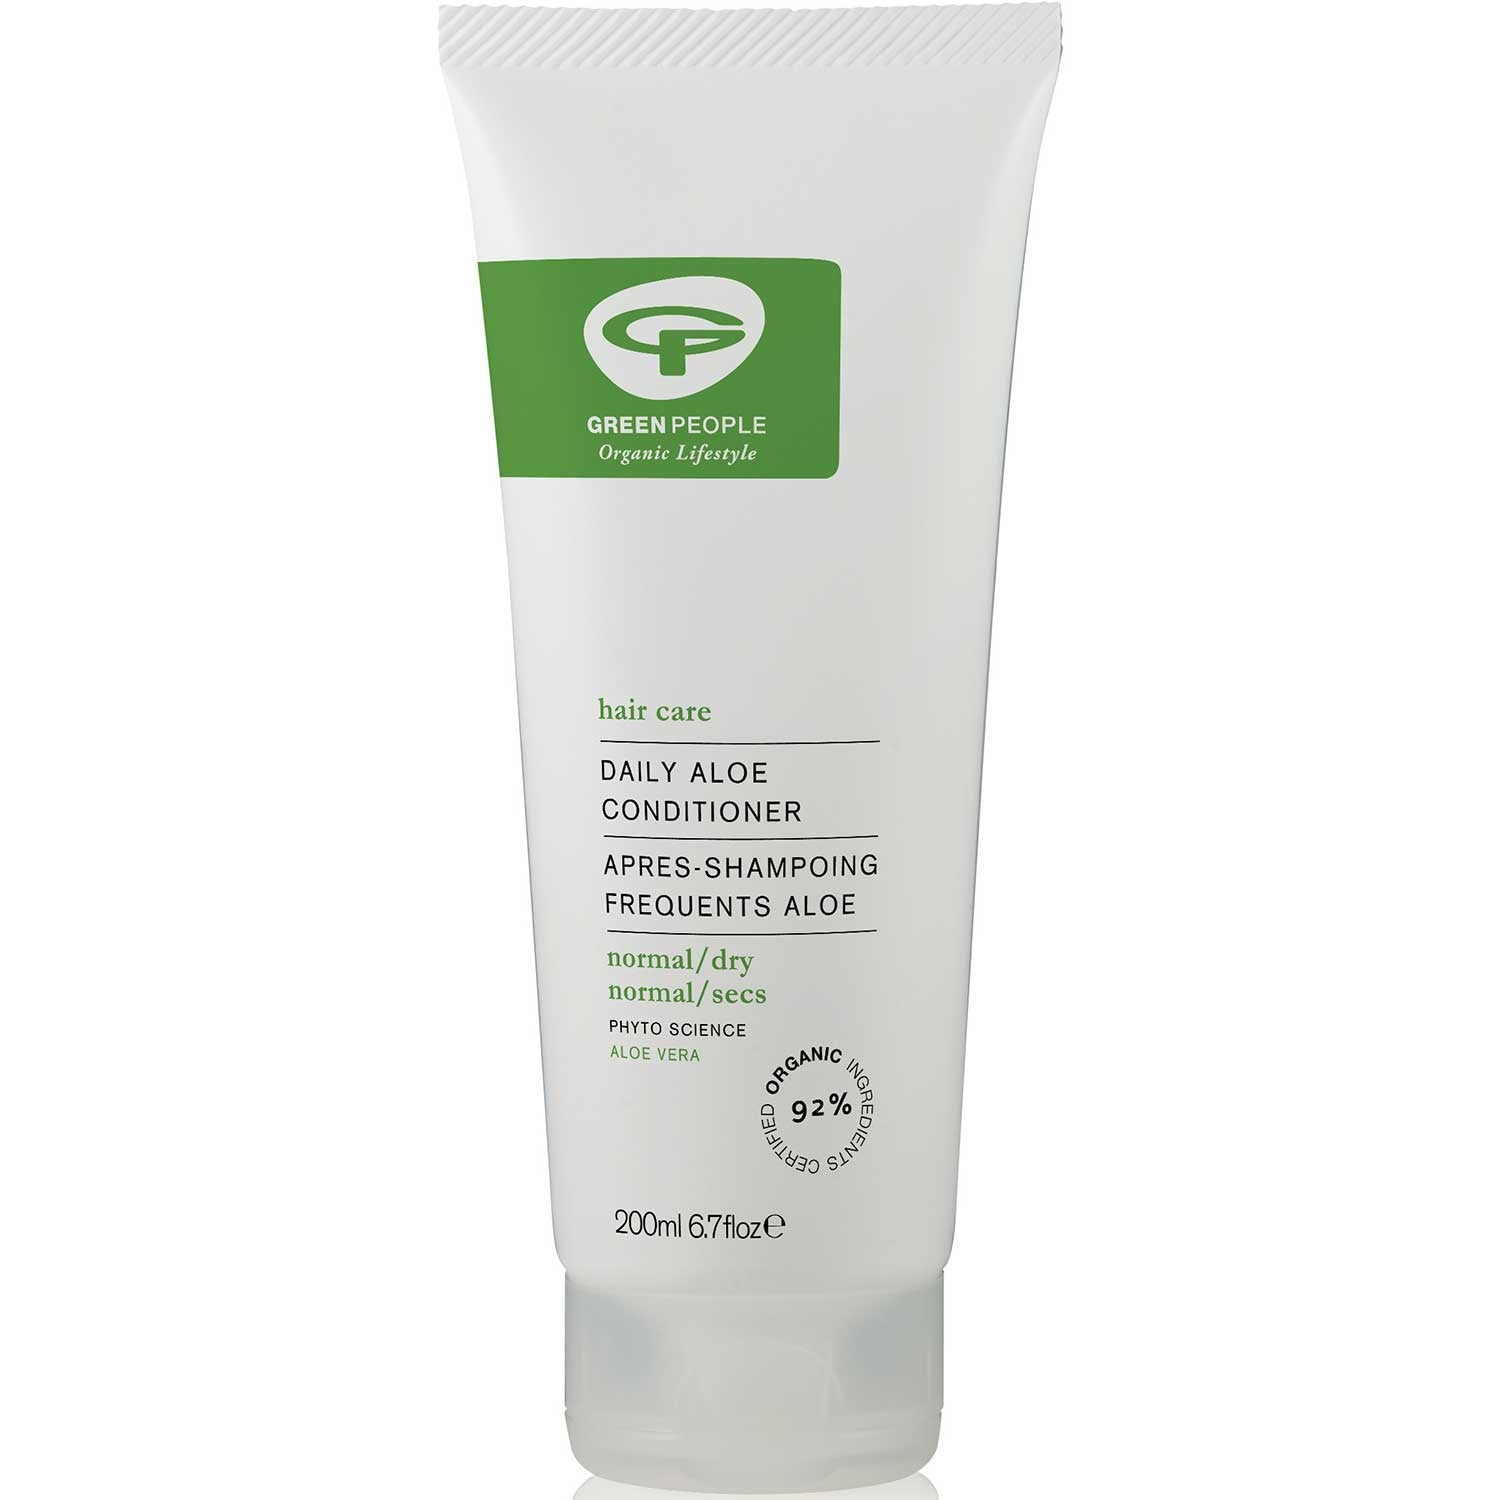 Green People Daily Aloe Conditioner, 200 ml.-NaturesWisdom